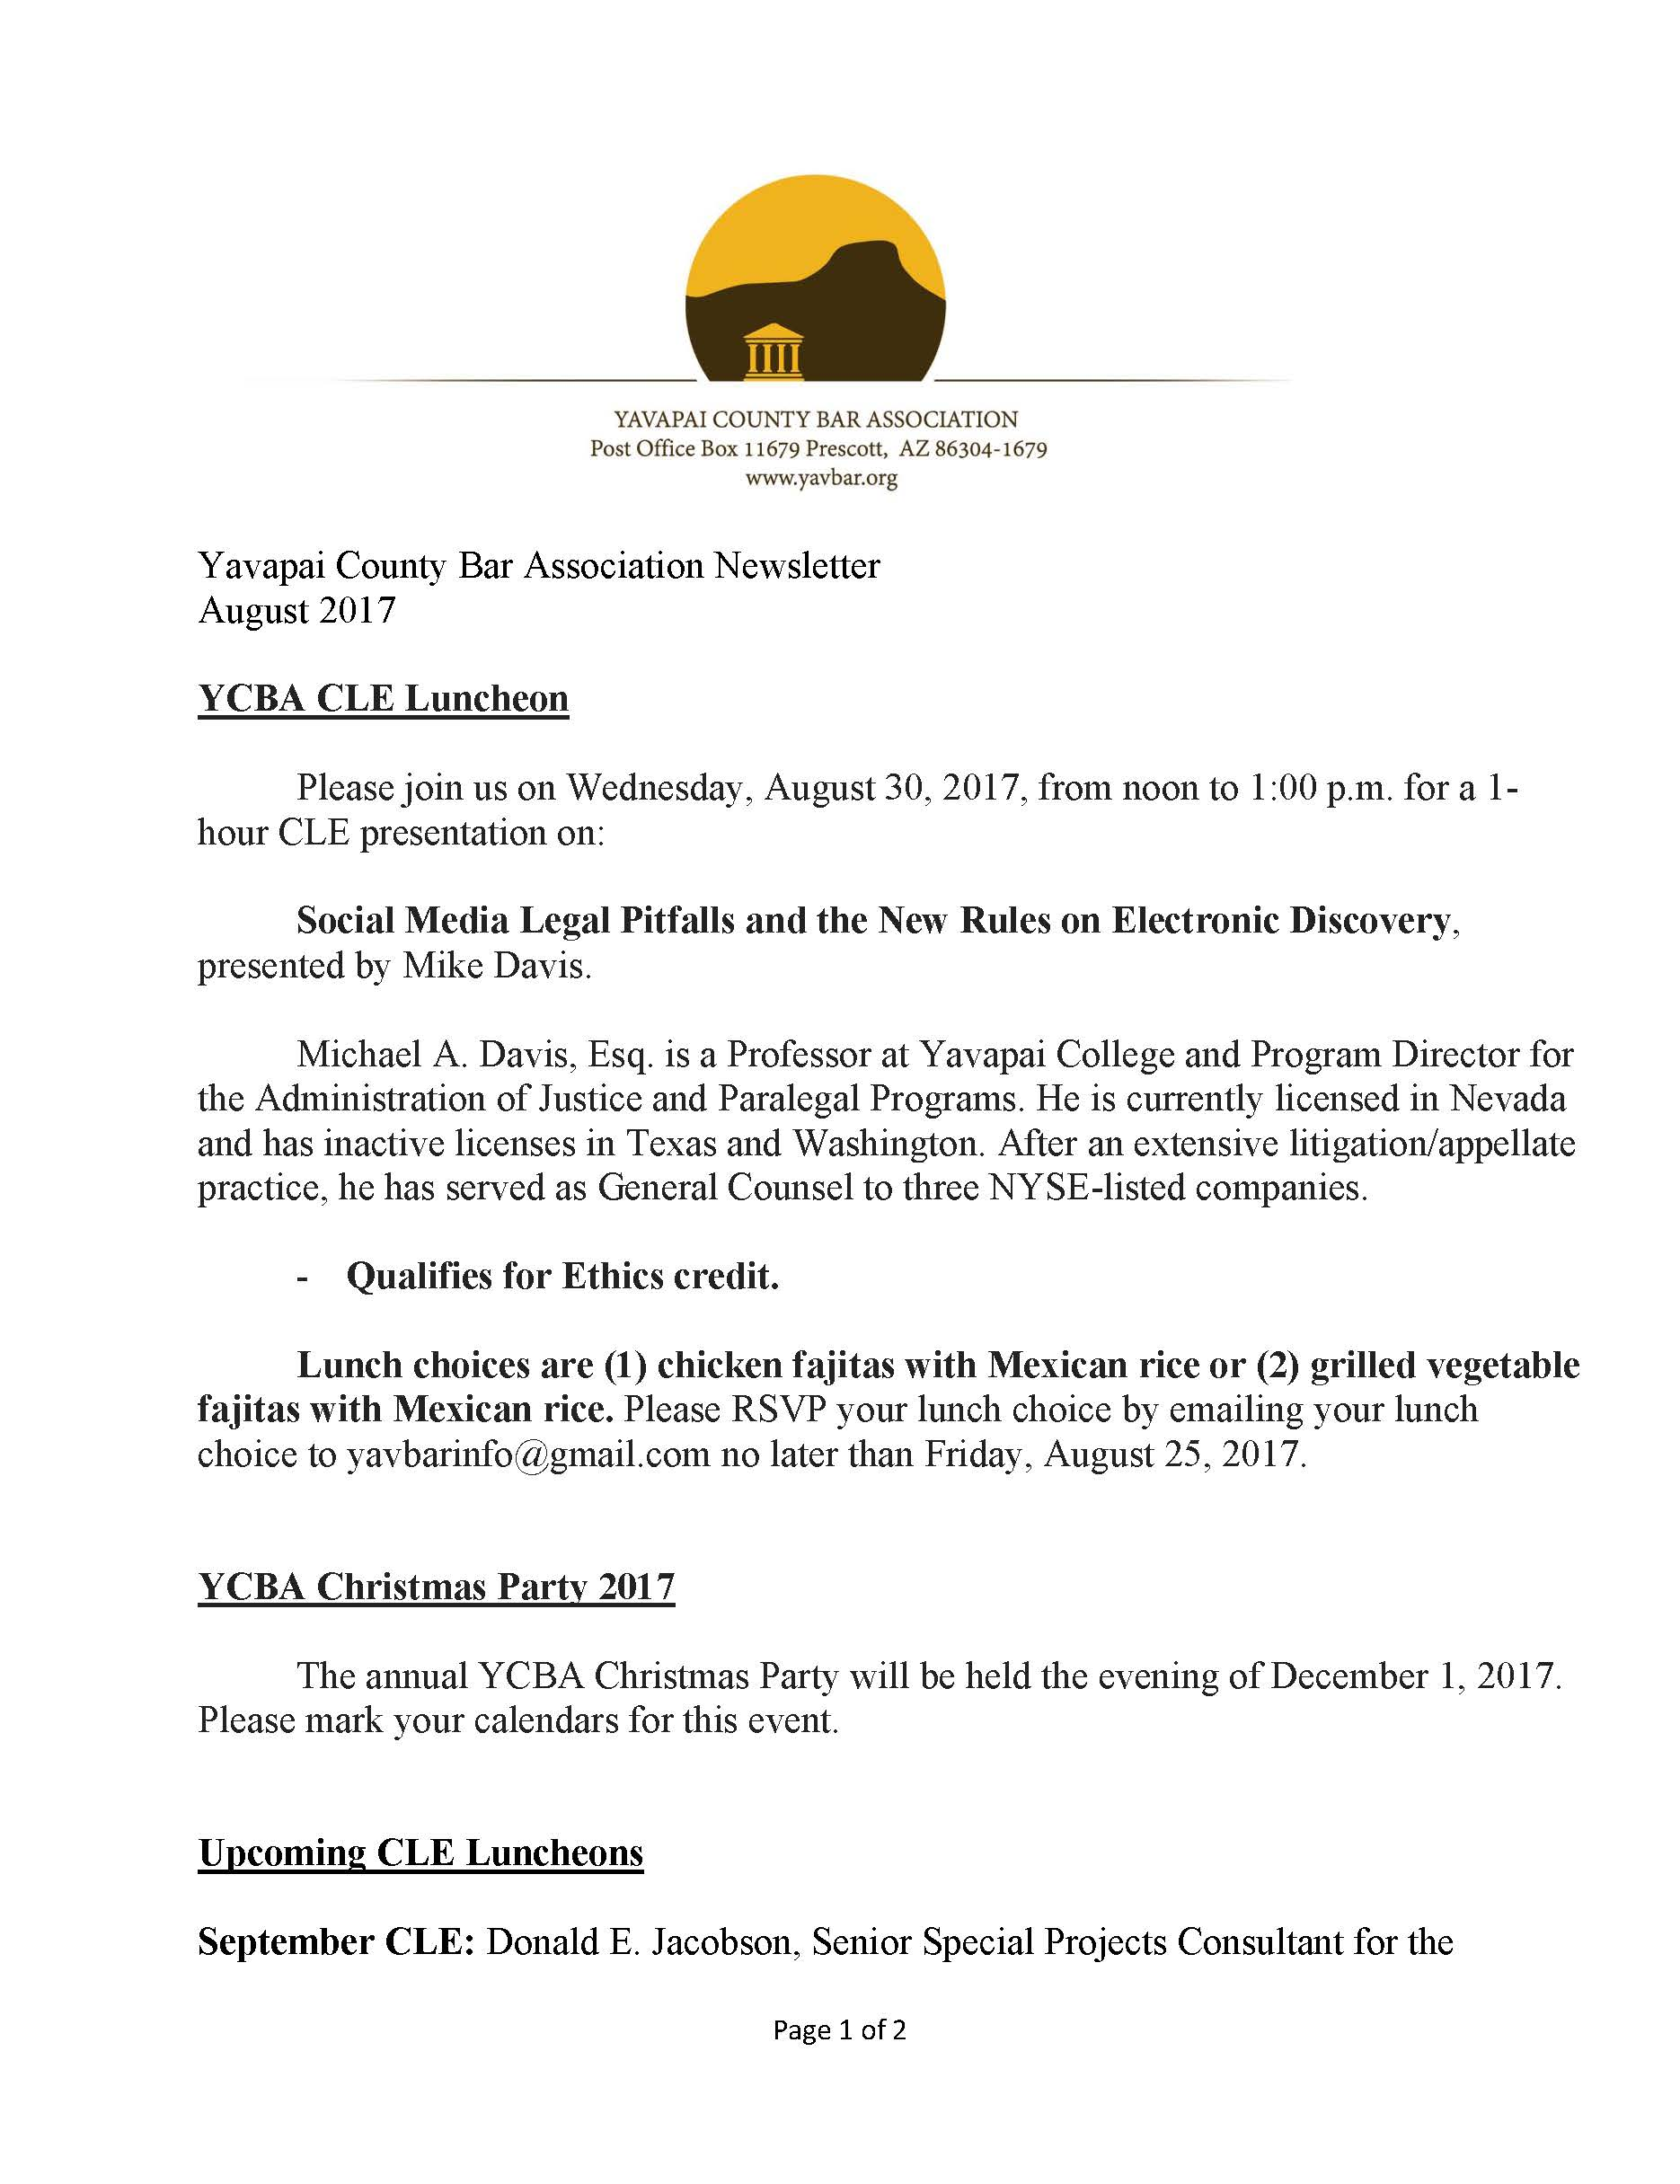 YCBA Newsletter August 2017_Page_1.jpg